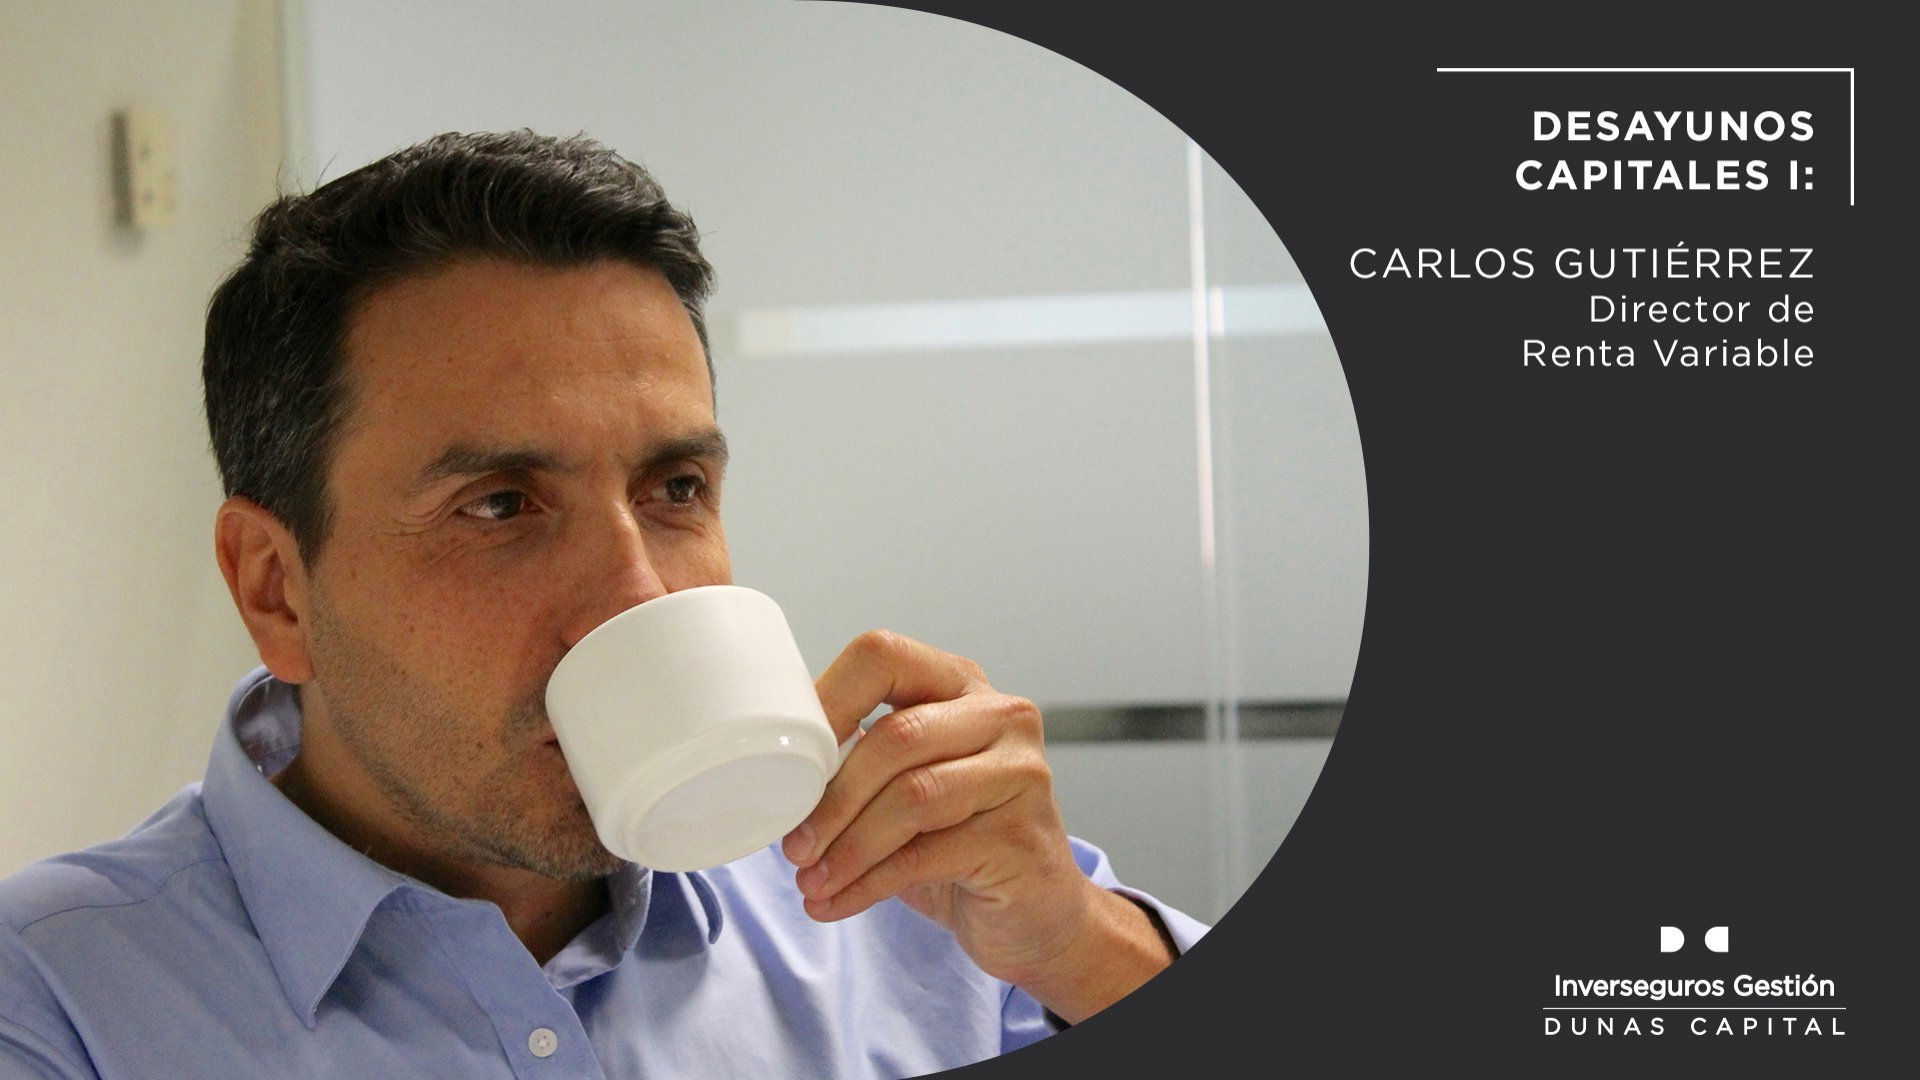 Desayunos Capitales II: Carlos Gutiérrez. Director de Renta Variable